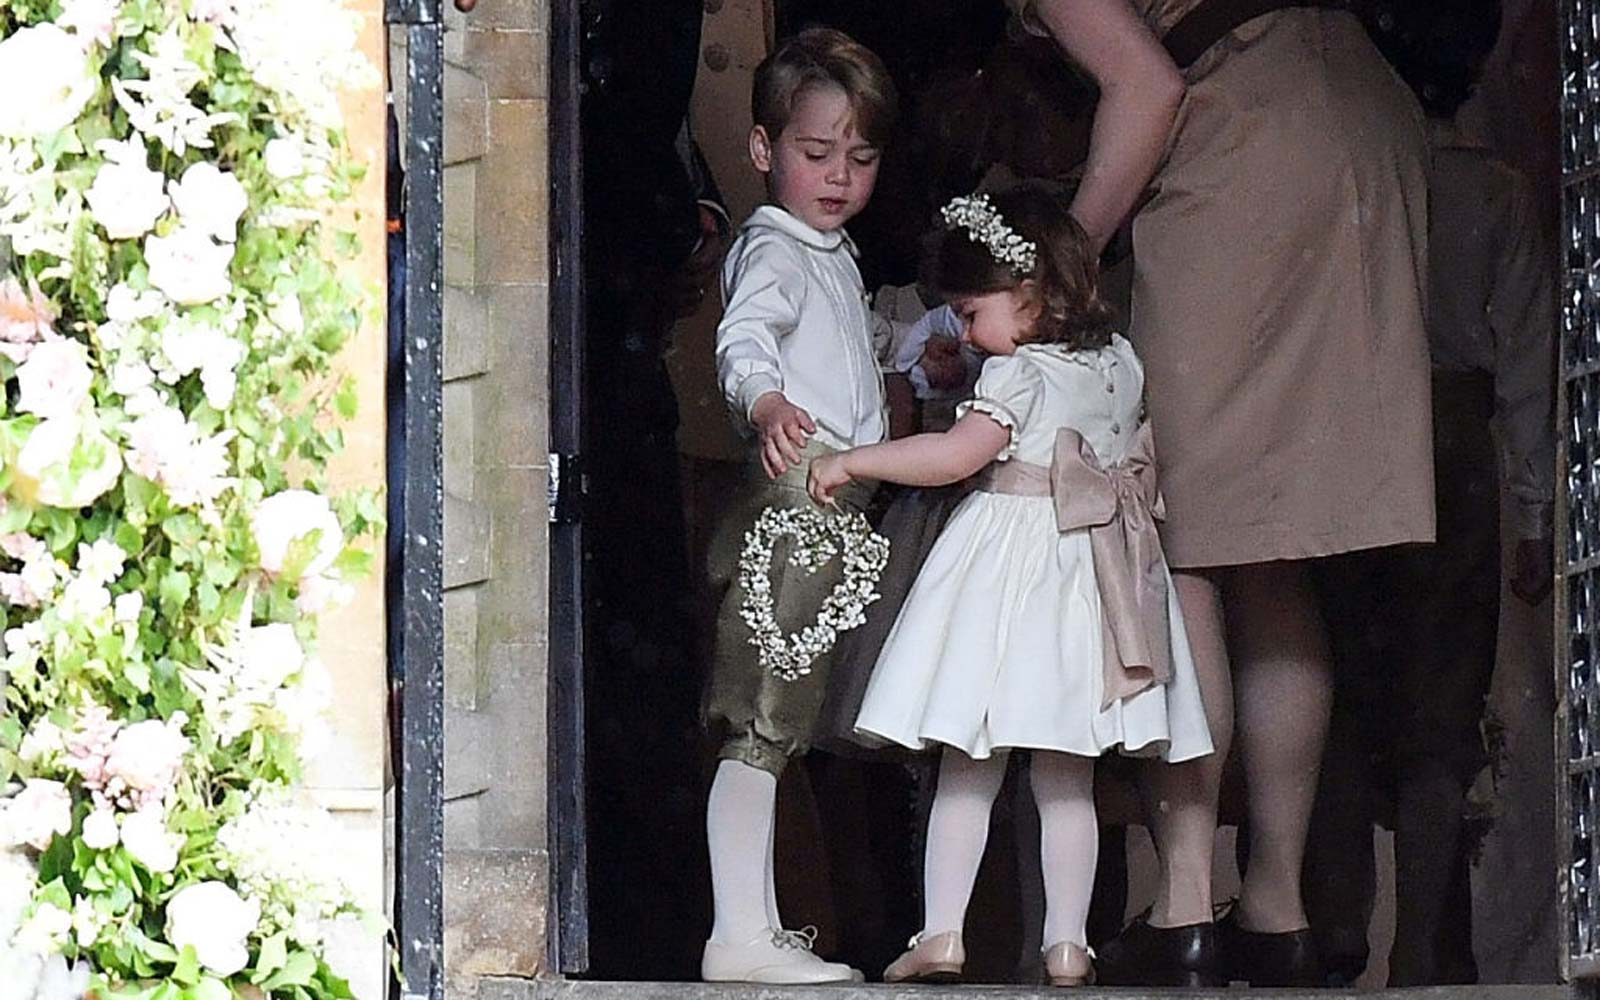 Prince George and Princess Charlotte Got Into Adorable Antics at a Family Friend's Wedding